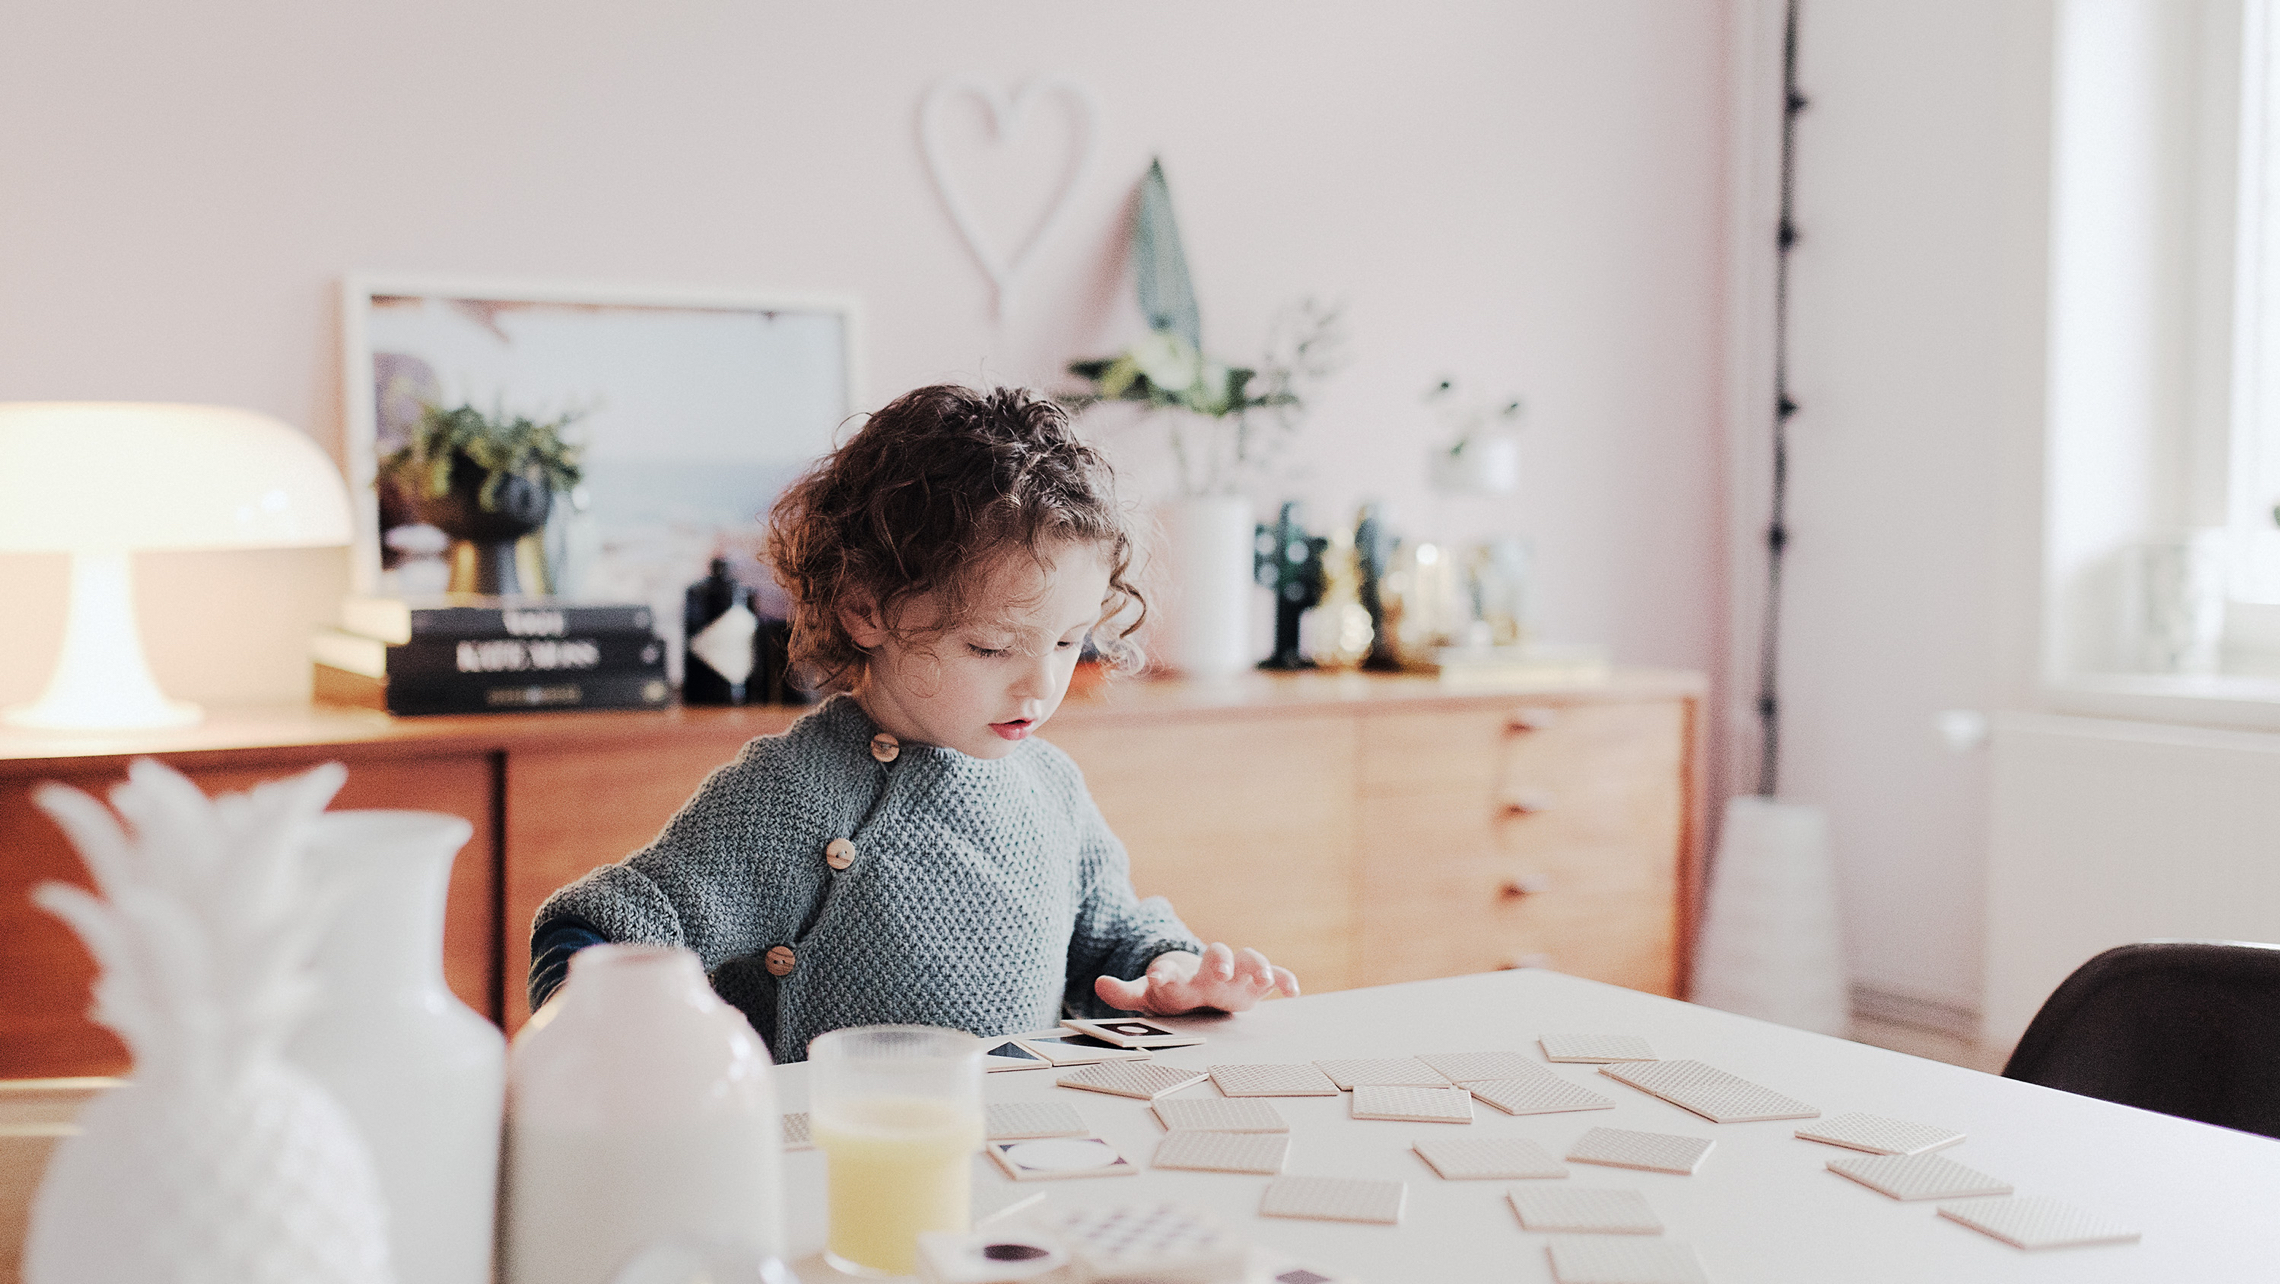 a young child with curly hair sitting at a table with Match Up cards